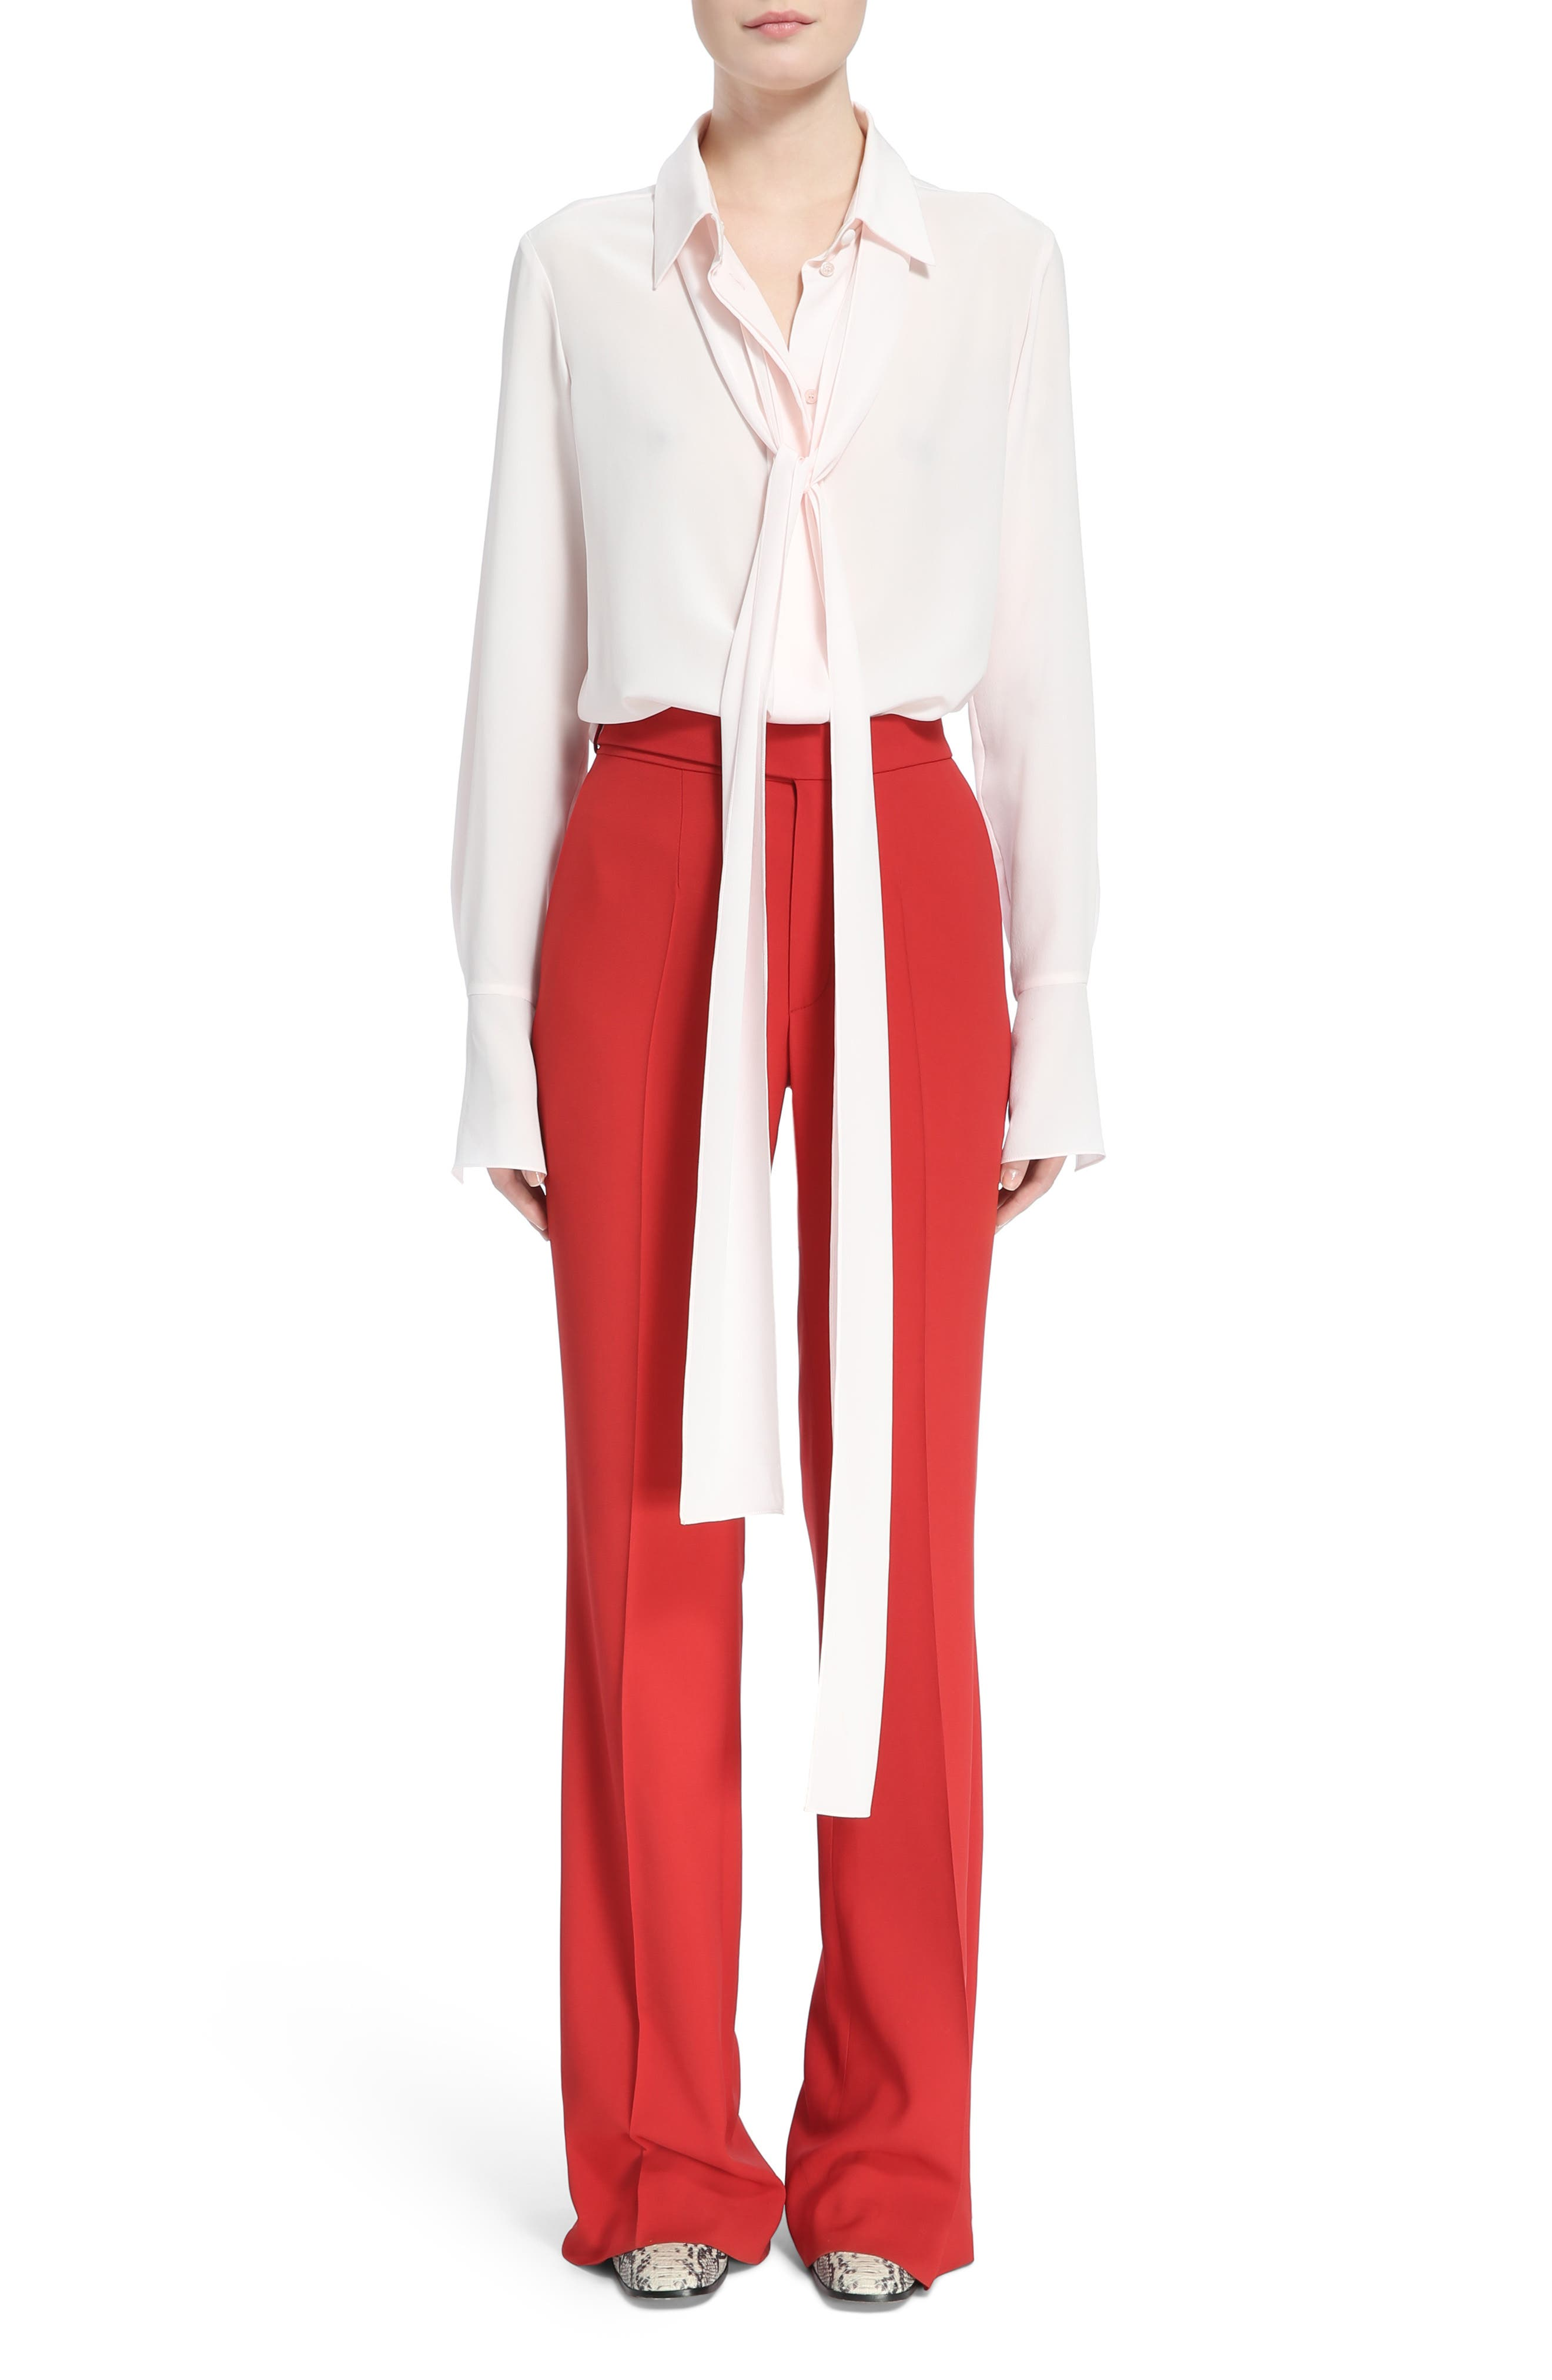 Cady Flare Suiting Pants,                             Alternate thumbnail 7, color,                             Ginger Red